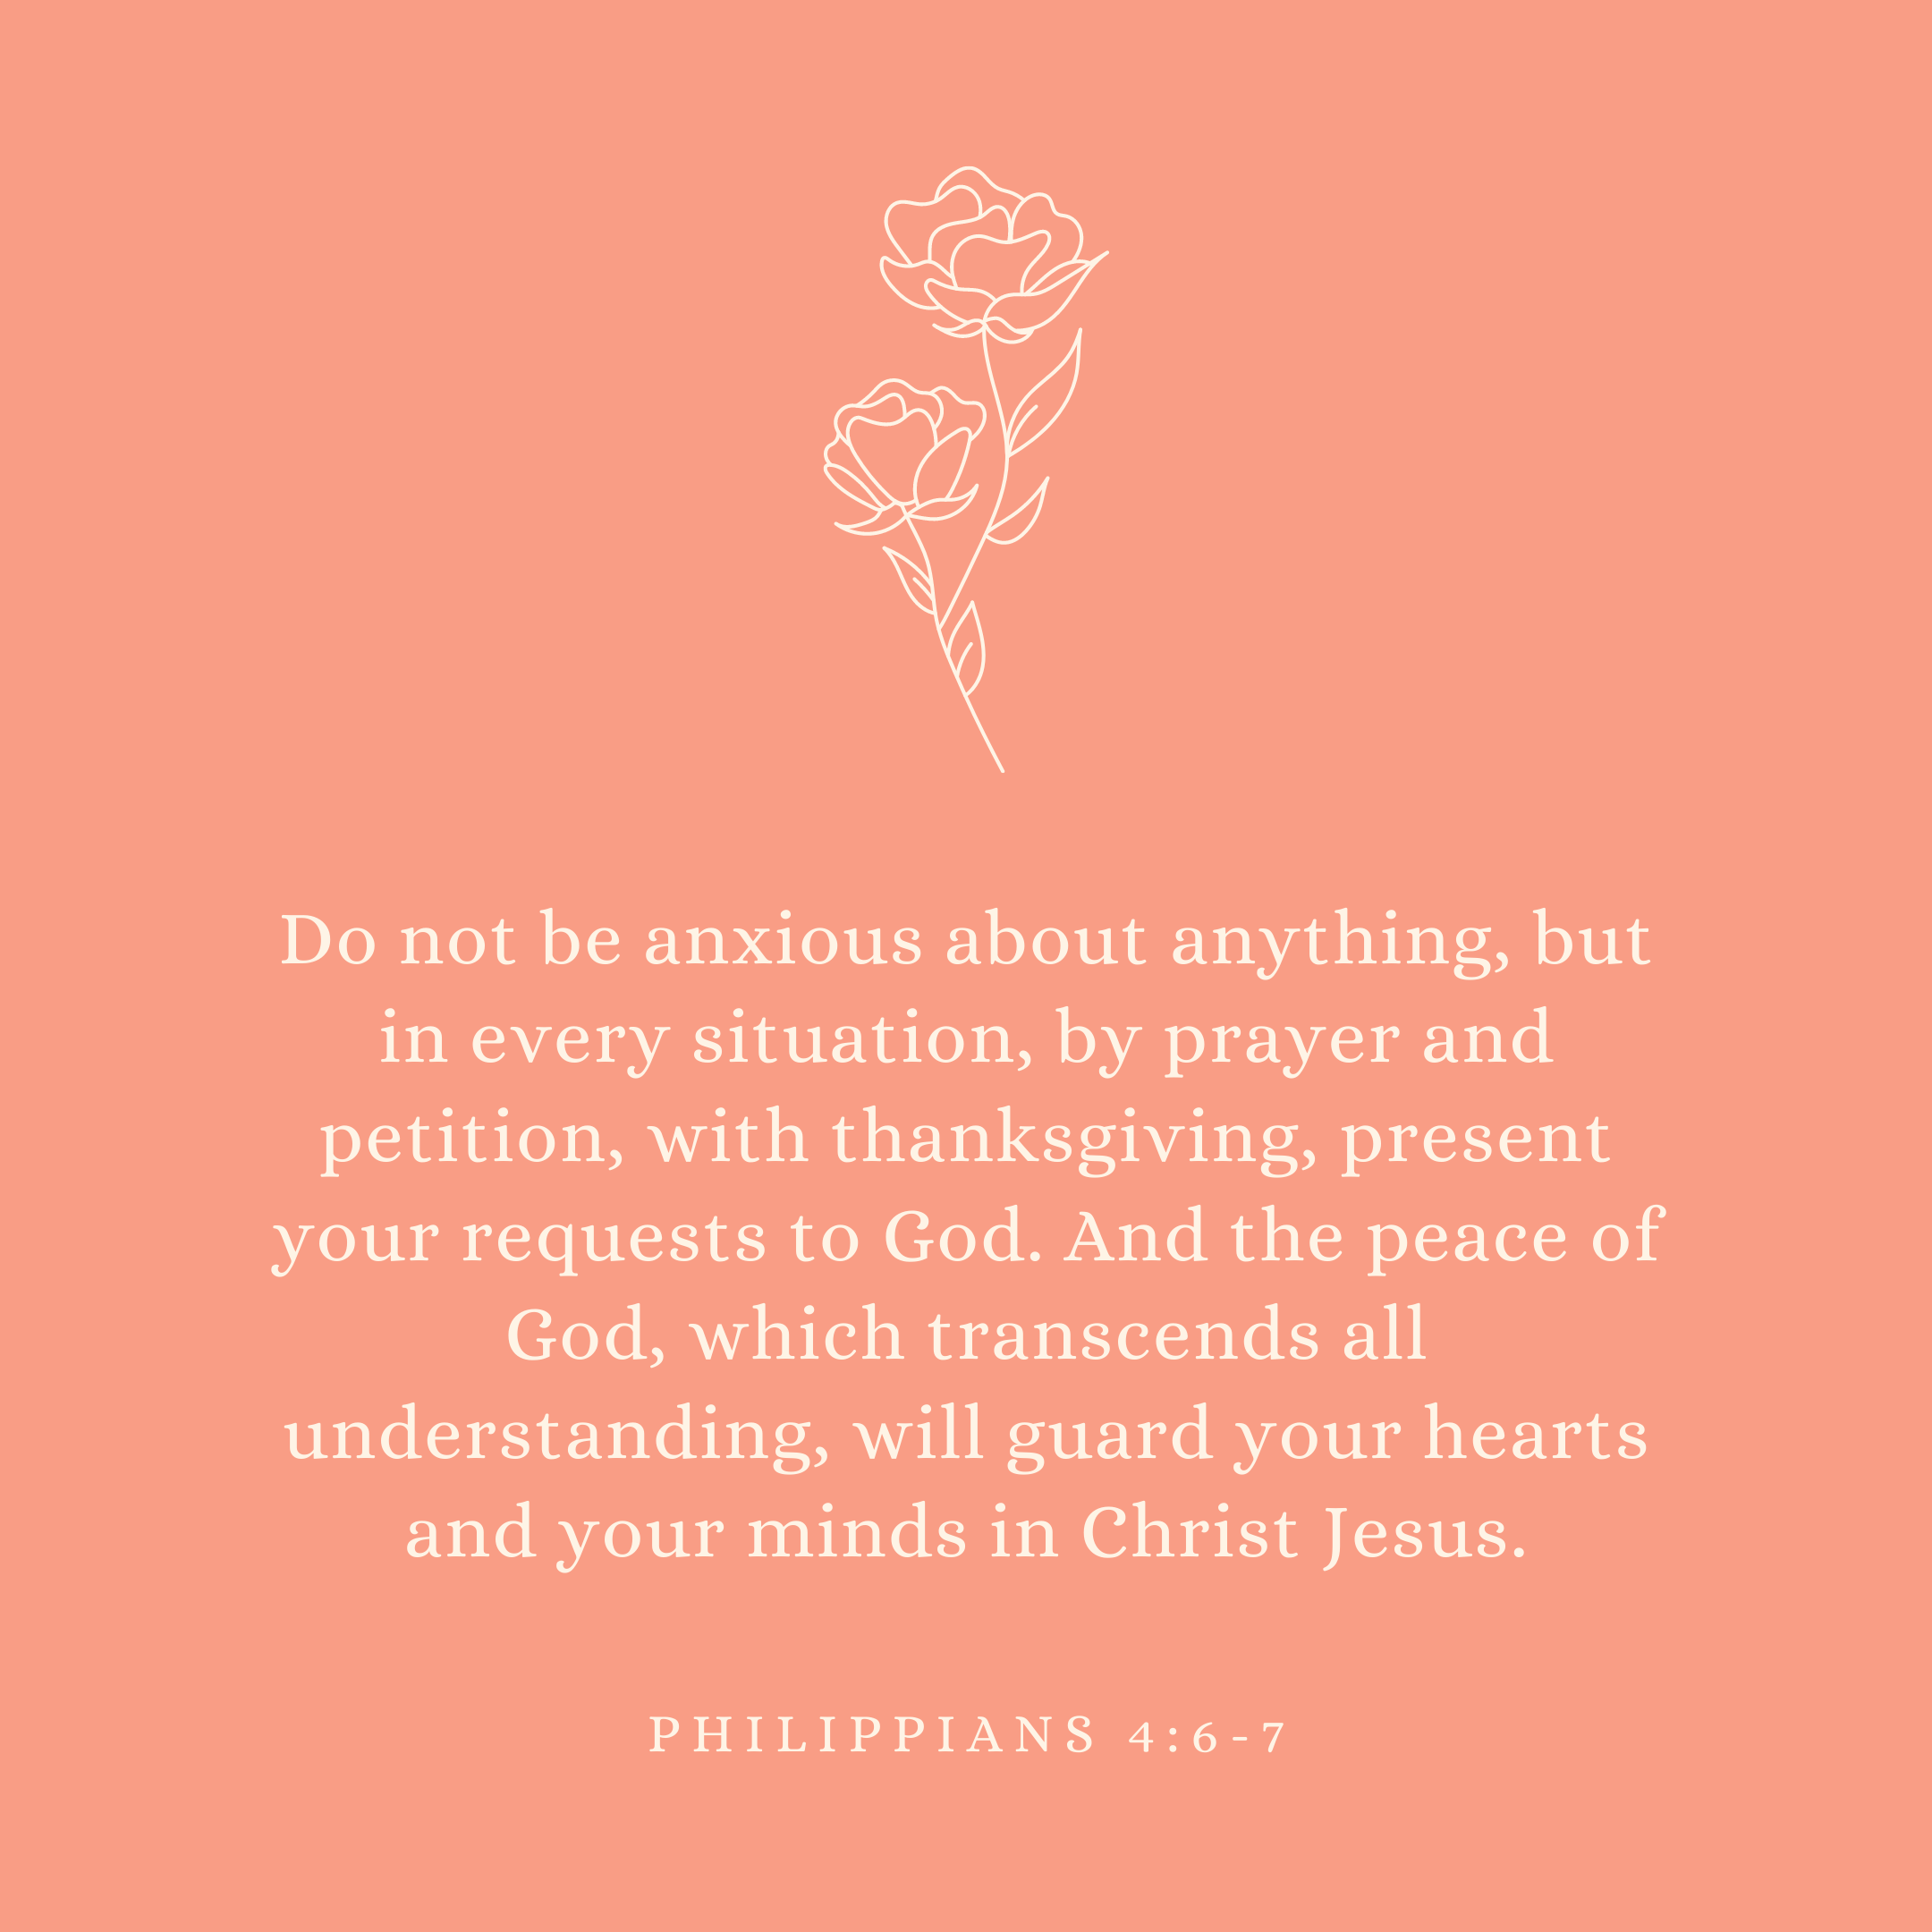 Philippians 4:6-7 Do not be anxious about anything, but in every situation, by prayer and petition, with thanksgiving, present your requests to God. And the peace of God, which transcends all understanding, will guard your hearts and your minds in Christ Jesus.